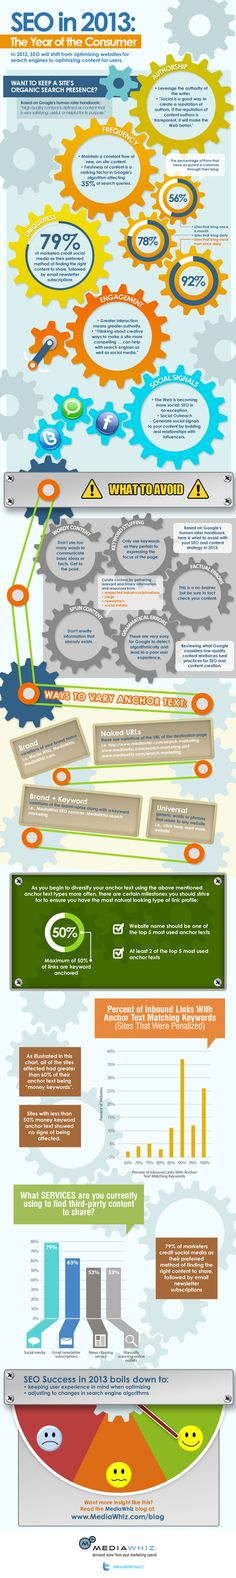 #Infographic: #SEO in 2013: the Year of the Consumer